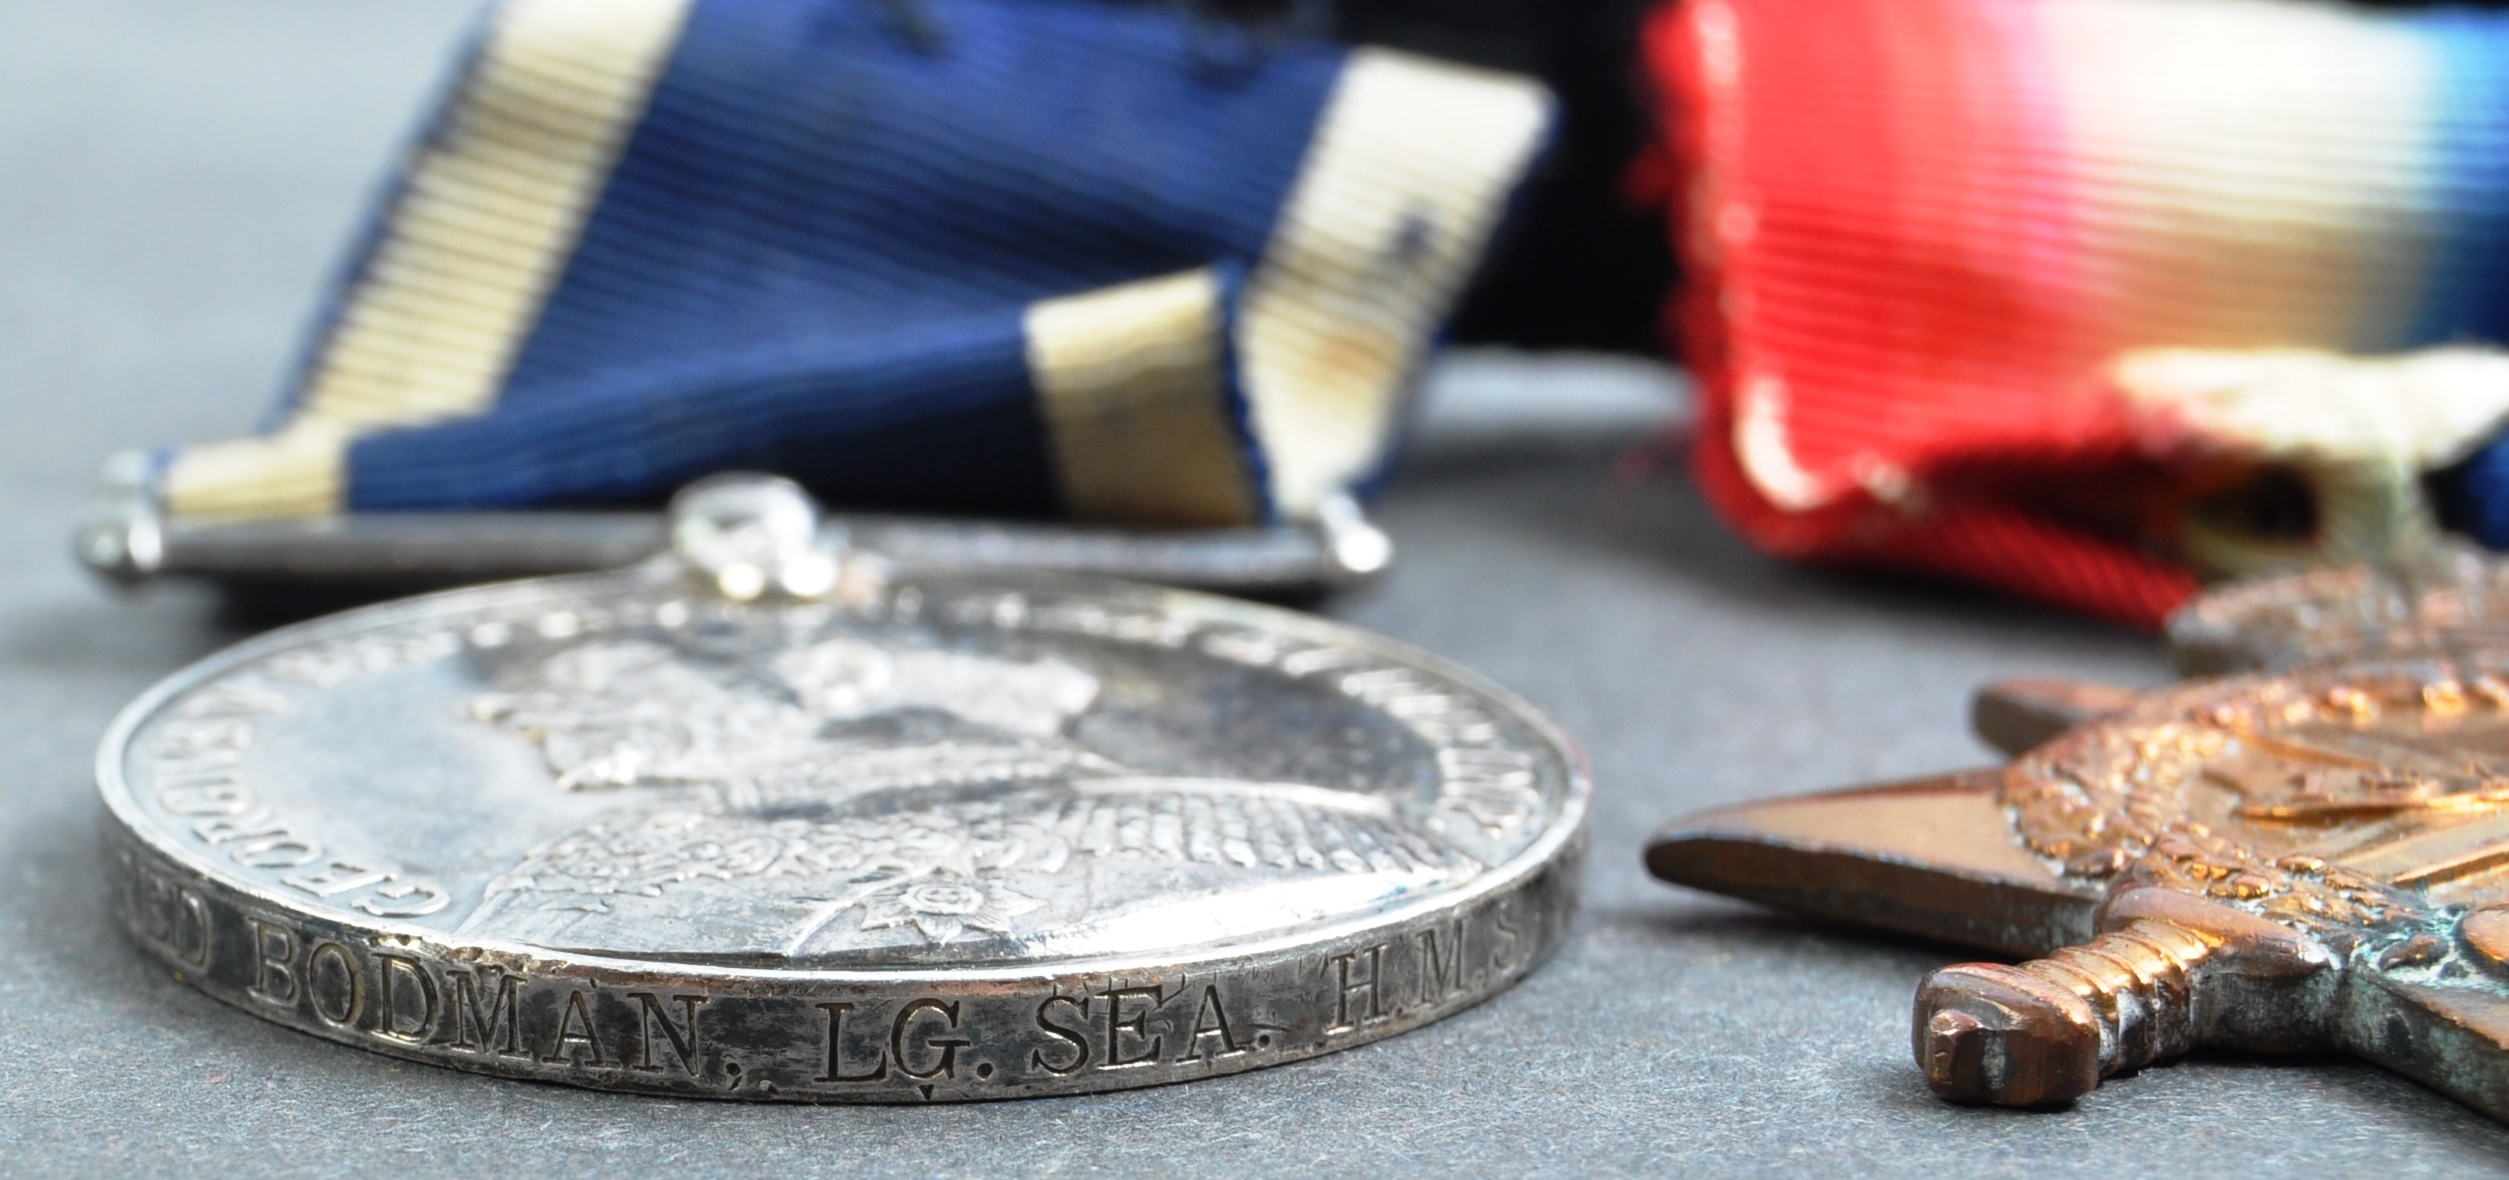 WWI FIRST WORLD WAR MEDAL GROUP - LEADING SEAMAN ROYAL NAVY - Image 9 of 10